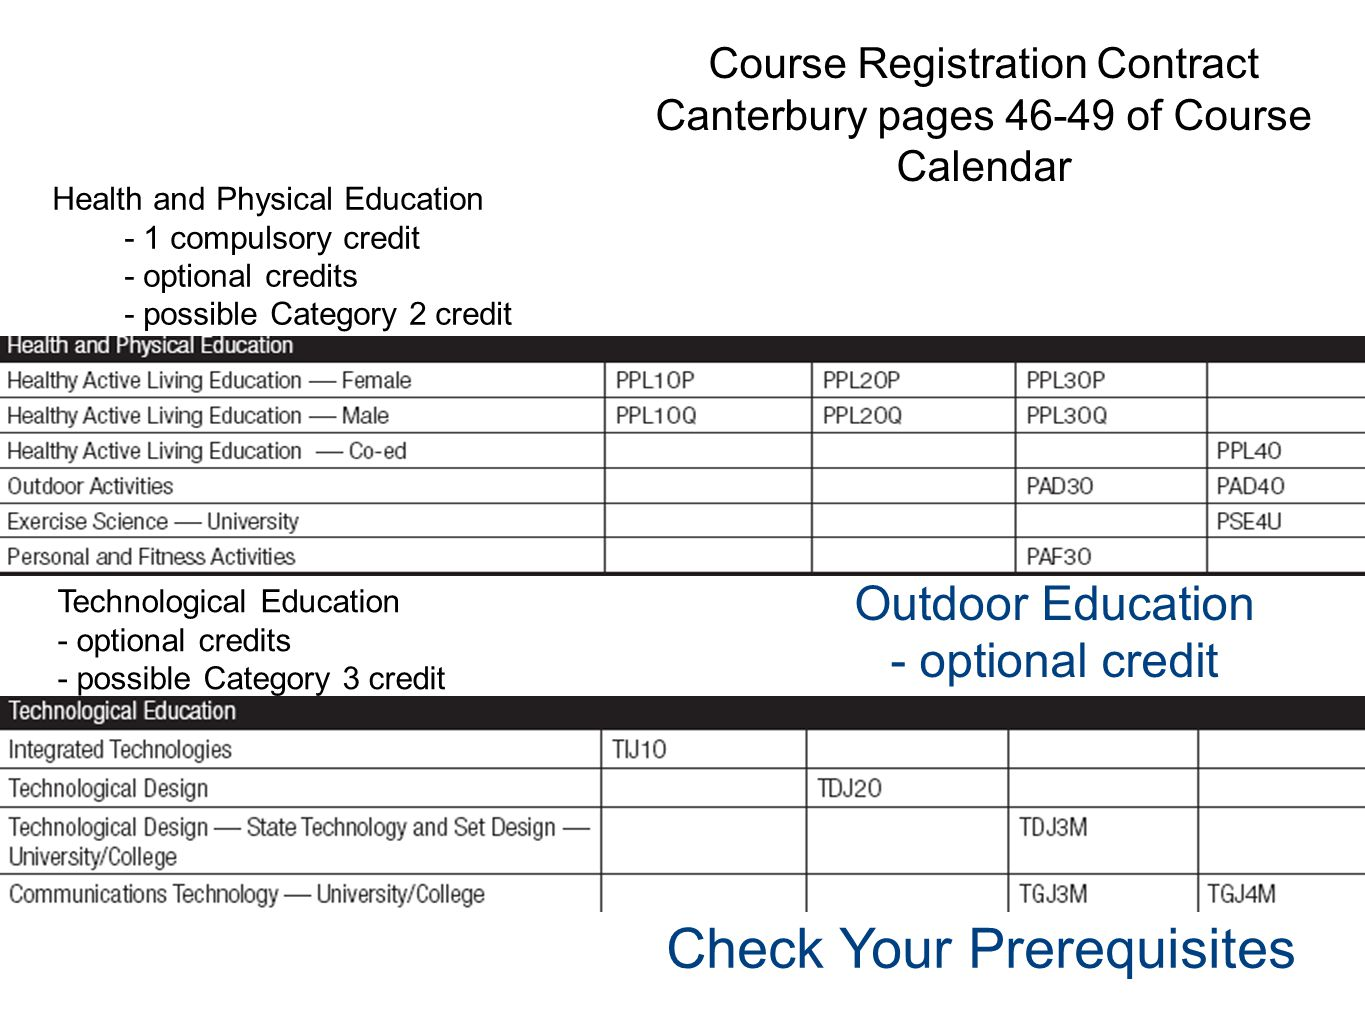 Health and Physical Education - 1 compulsory credit - optional credits - possible Category 2 credit Check Your Prerequisites Technological Education - optional credits - possible Category 3 credit Course Registration Contract Canterbury pages 46-49 of Course Calendar Outdoor Education - optional credit